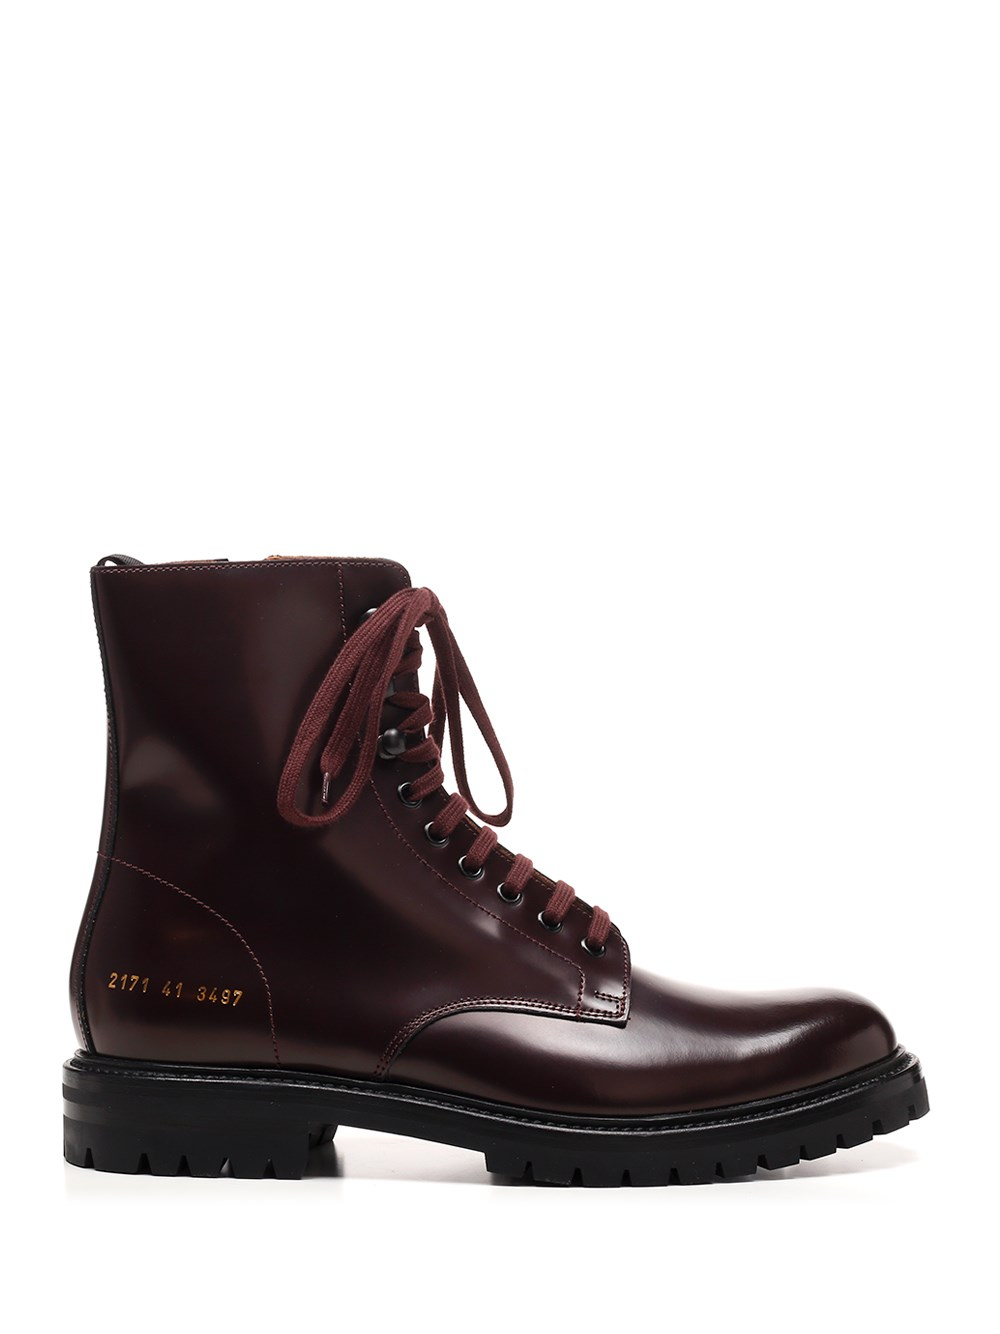 COMMON PROJECTS Burgundy Leather Combat Boots